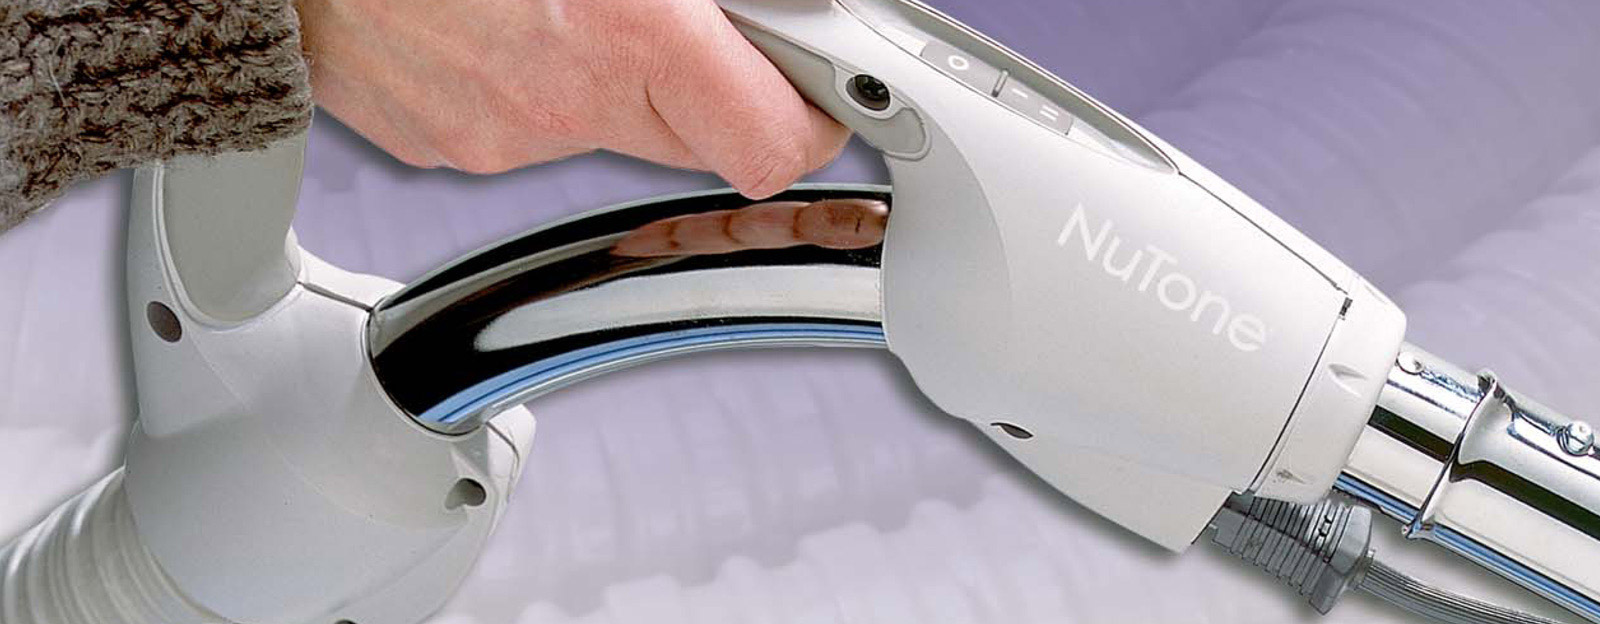 FAQs about NuTone Central Vacuums